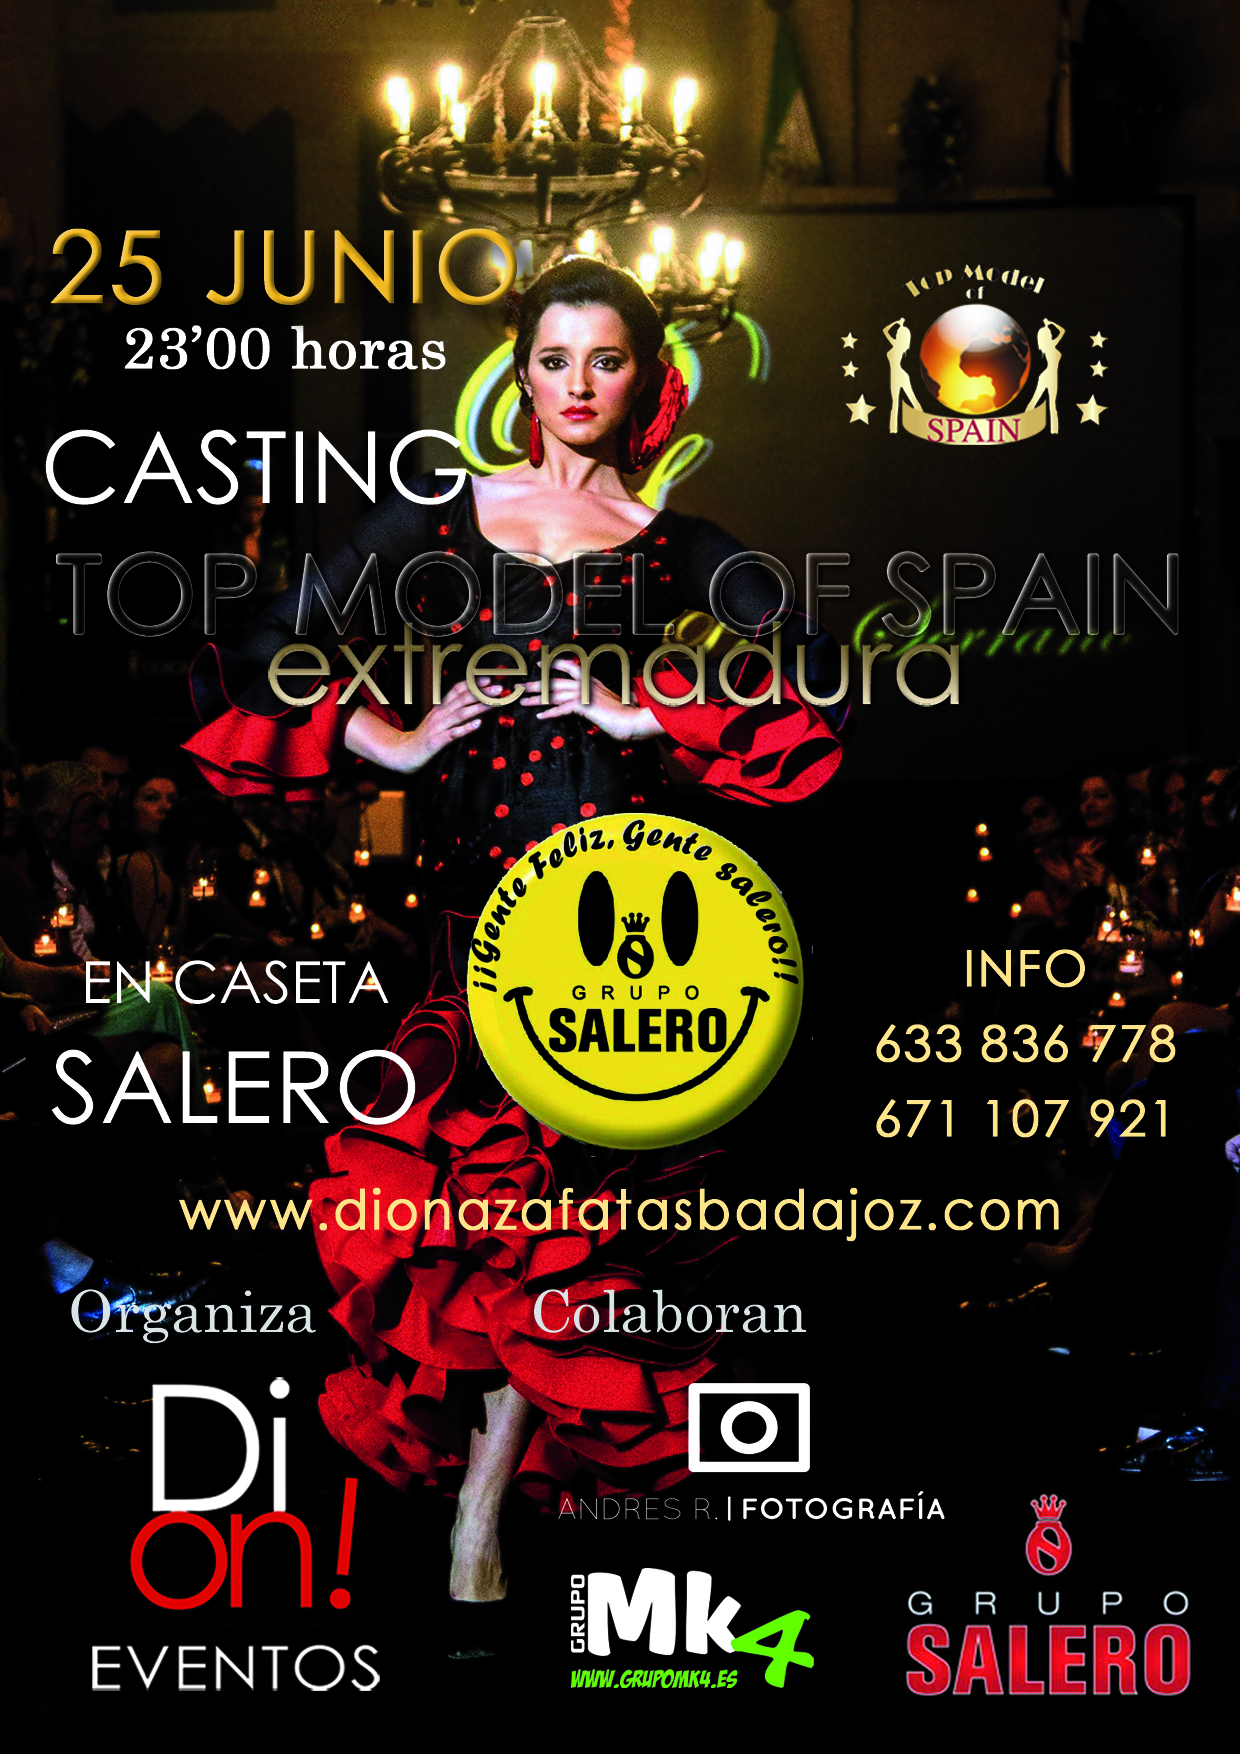 1er casting top model of spain 2016 extremadura